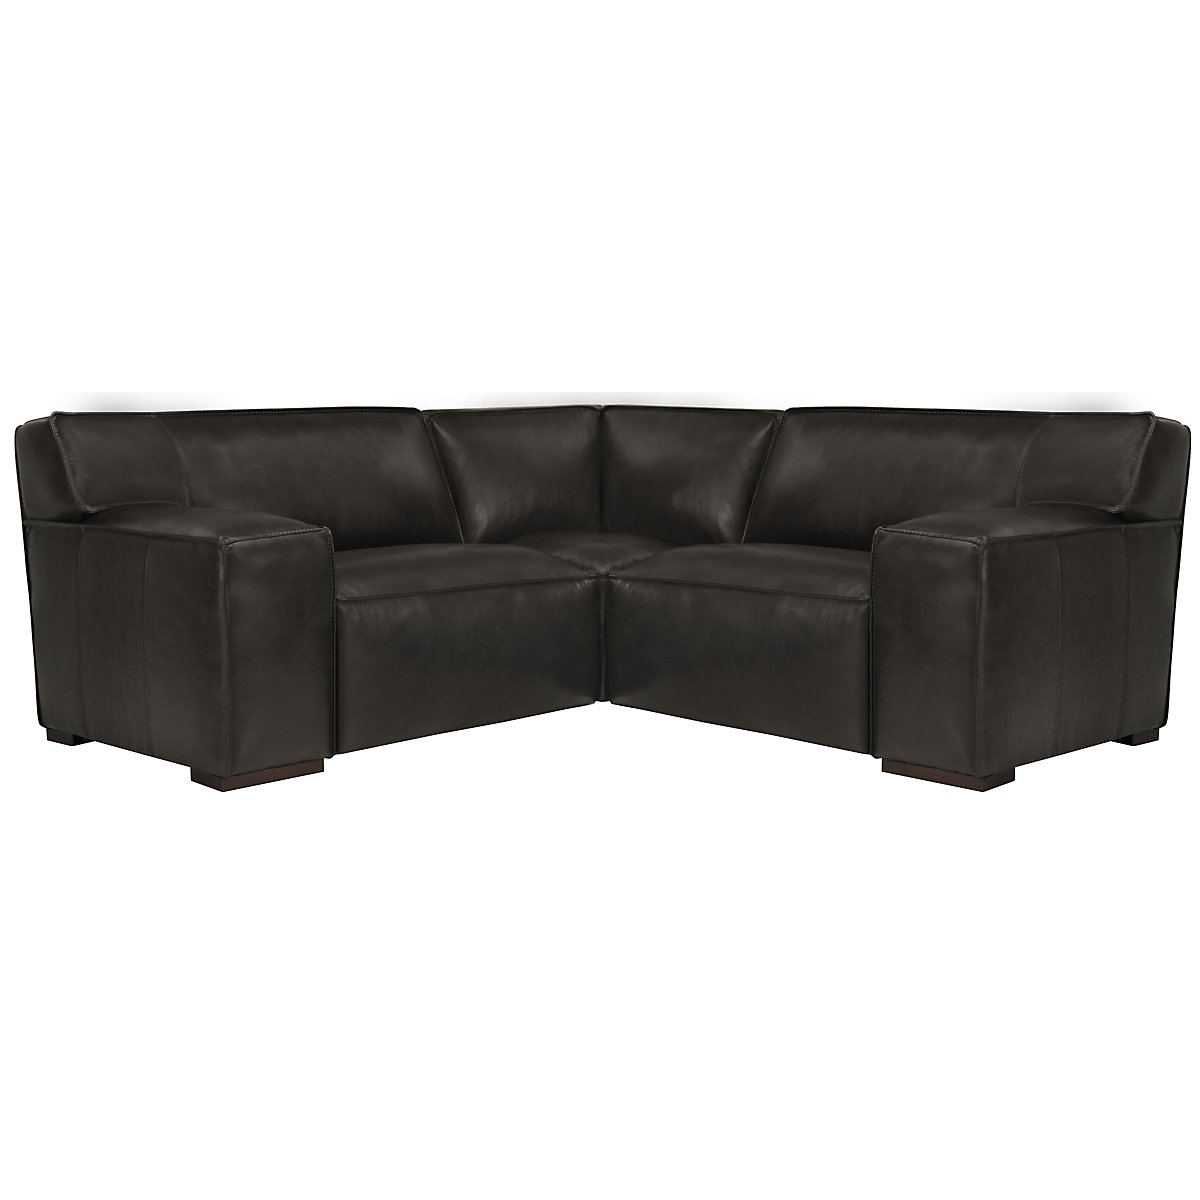 Asher Dk Gray Leather & Vinyl Two-Arm Sectional